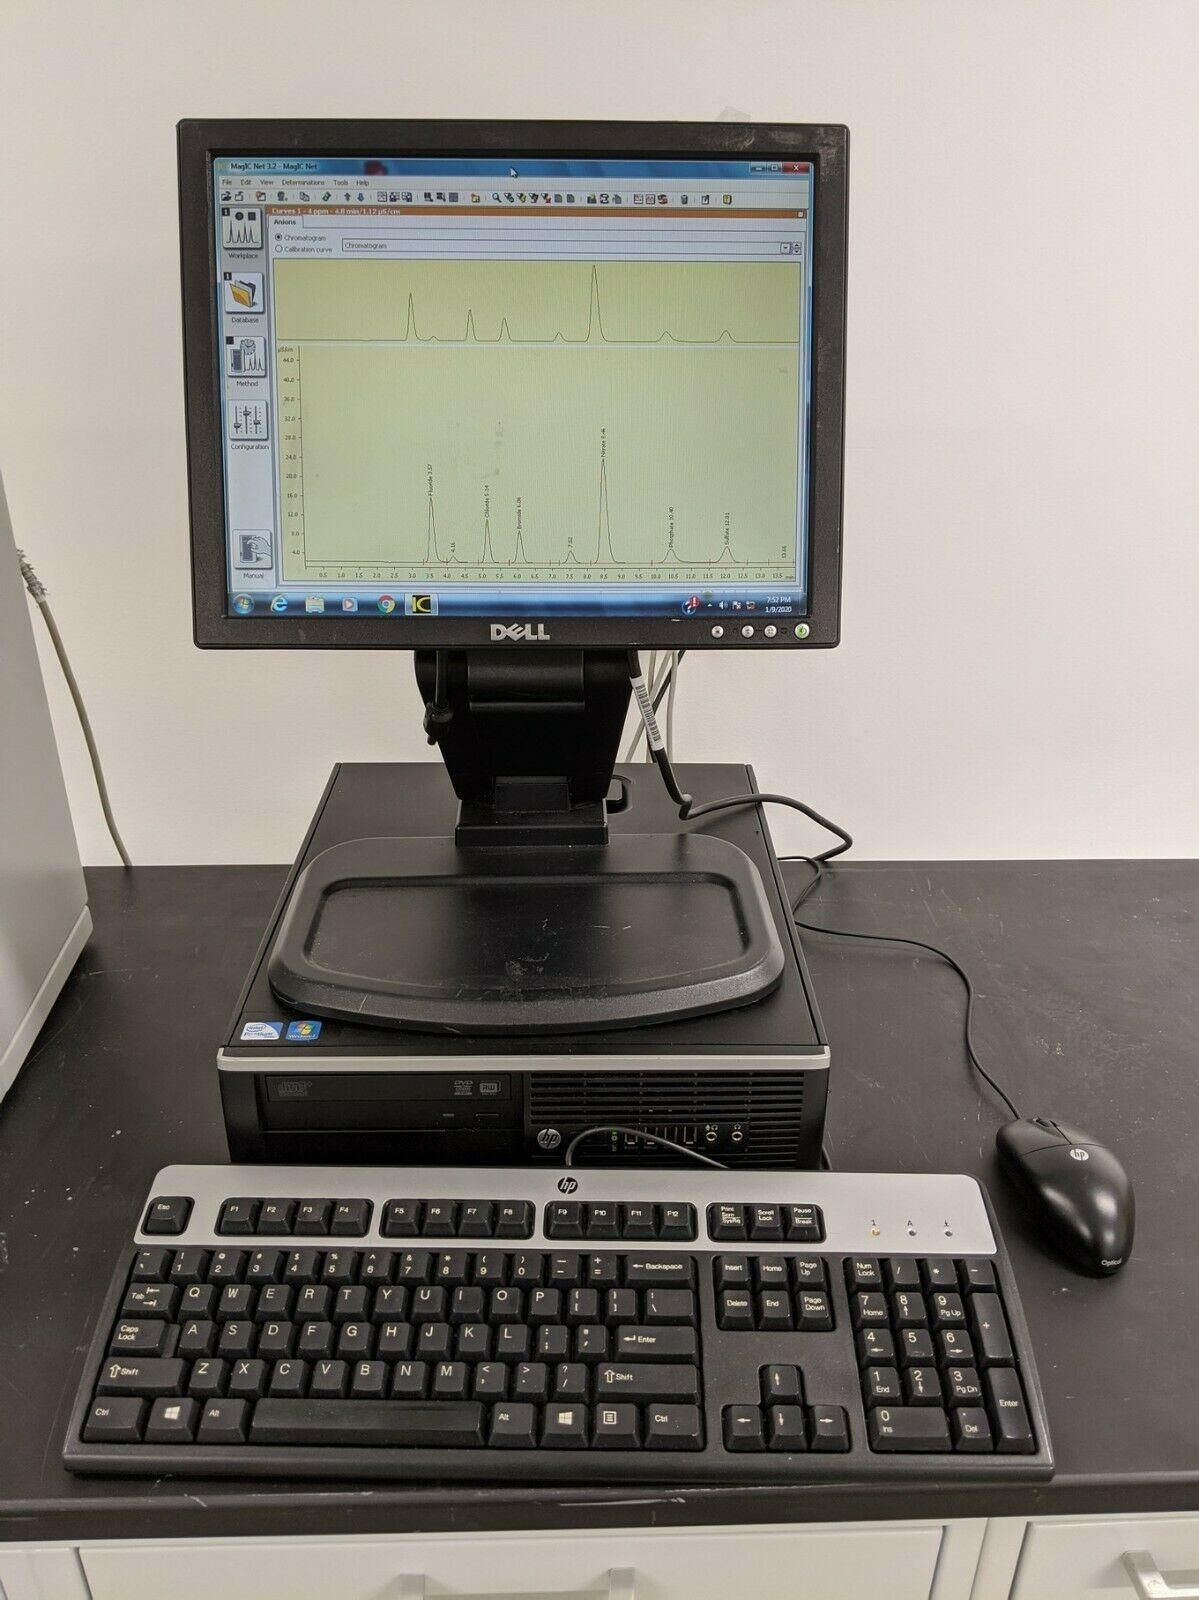 Metrohm  850 Professional IC, 889 Autosampler, Computer/Software, Tested